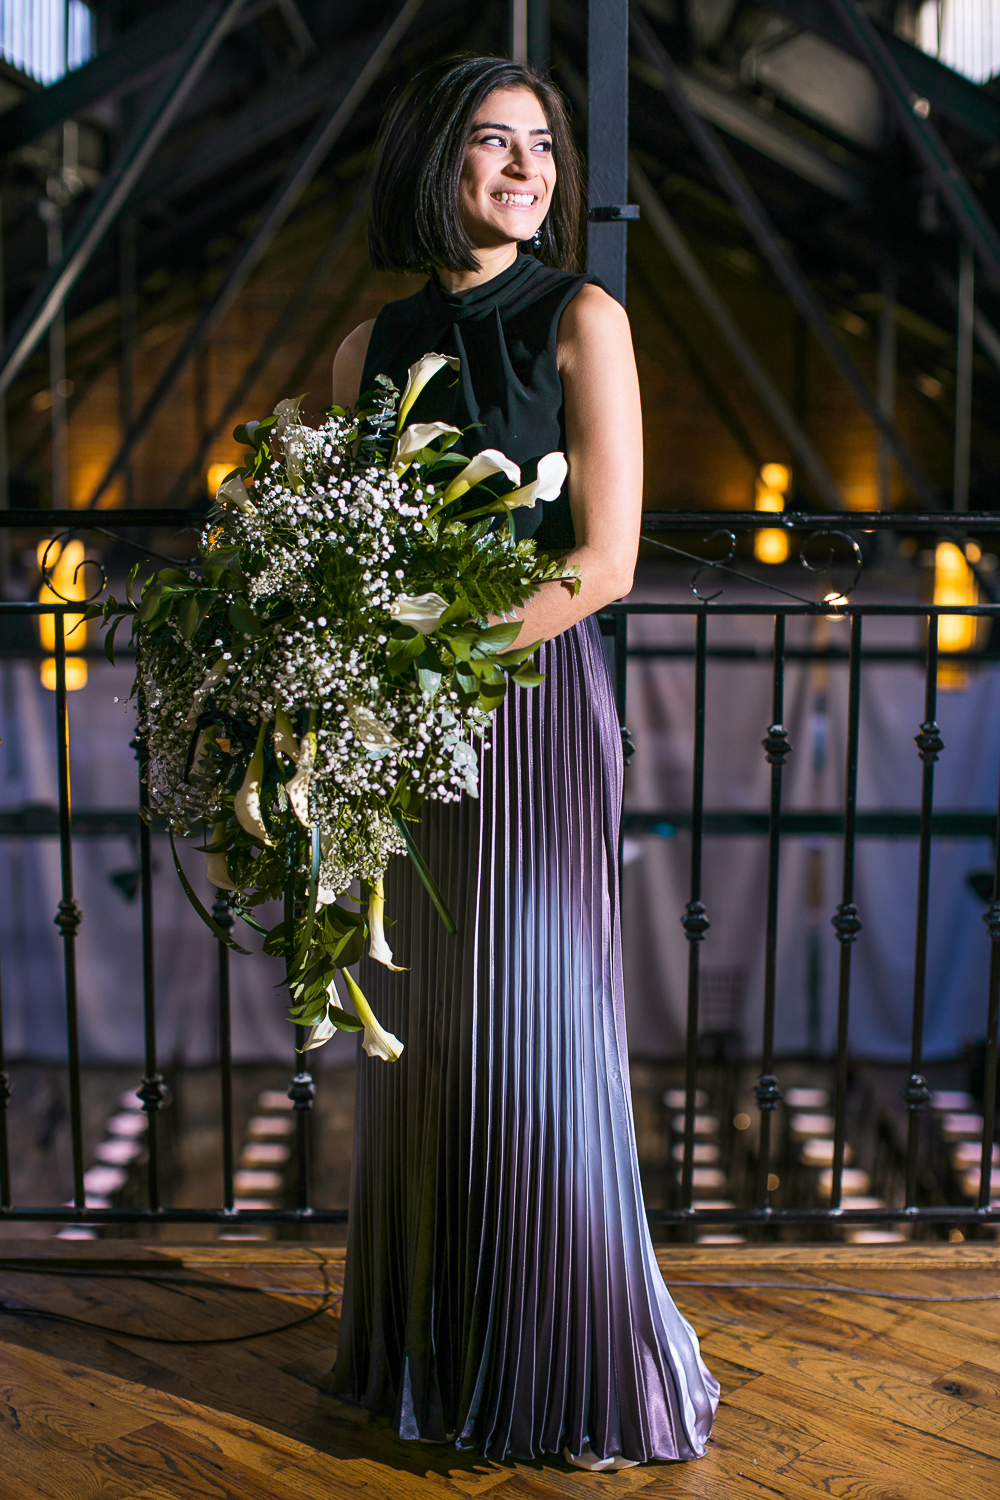 Bride in a purple dress with white flowers | 26 Bridge Wedding Photos | Lesbian Brooklyn Wedding | Kristin and Marisa's Wedding